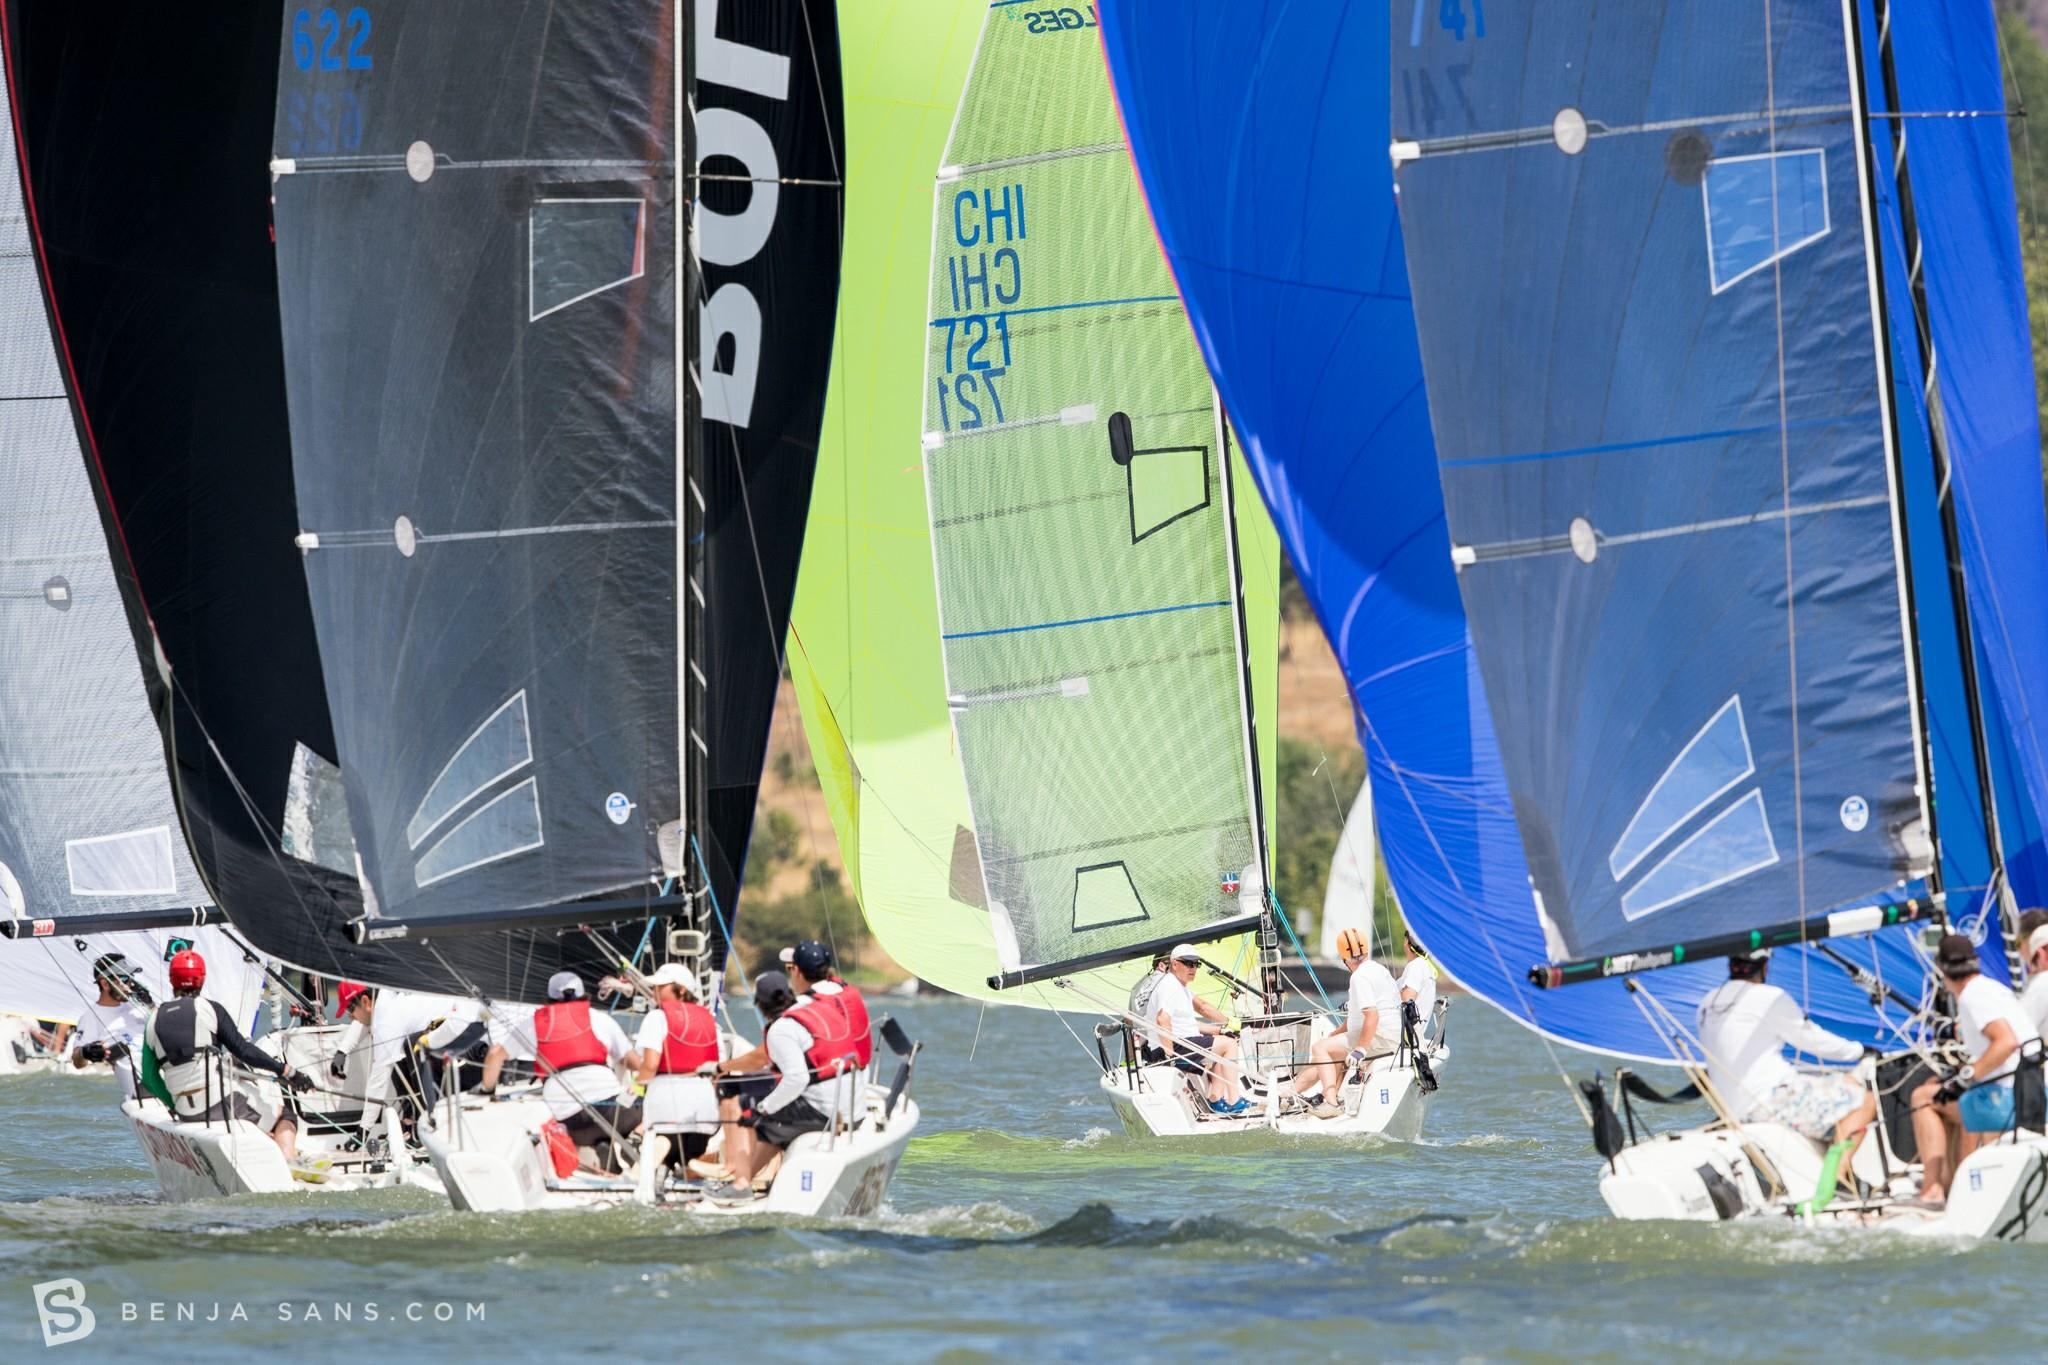 2018 Melges 24 CHI Nationals